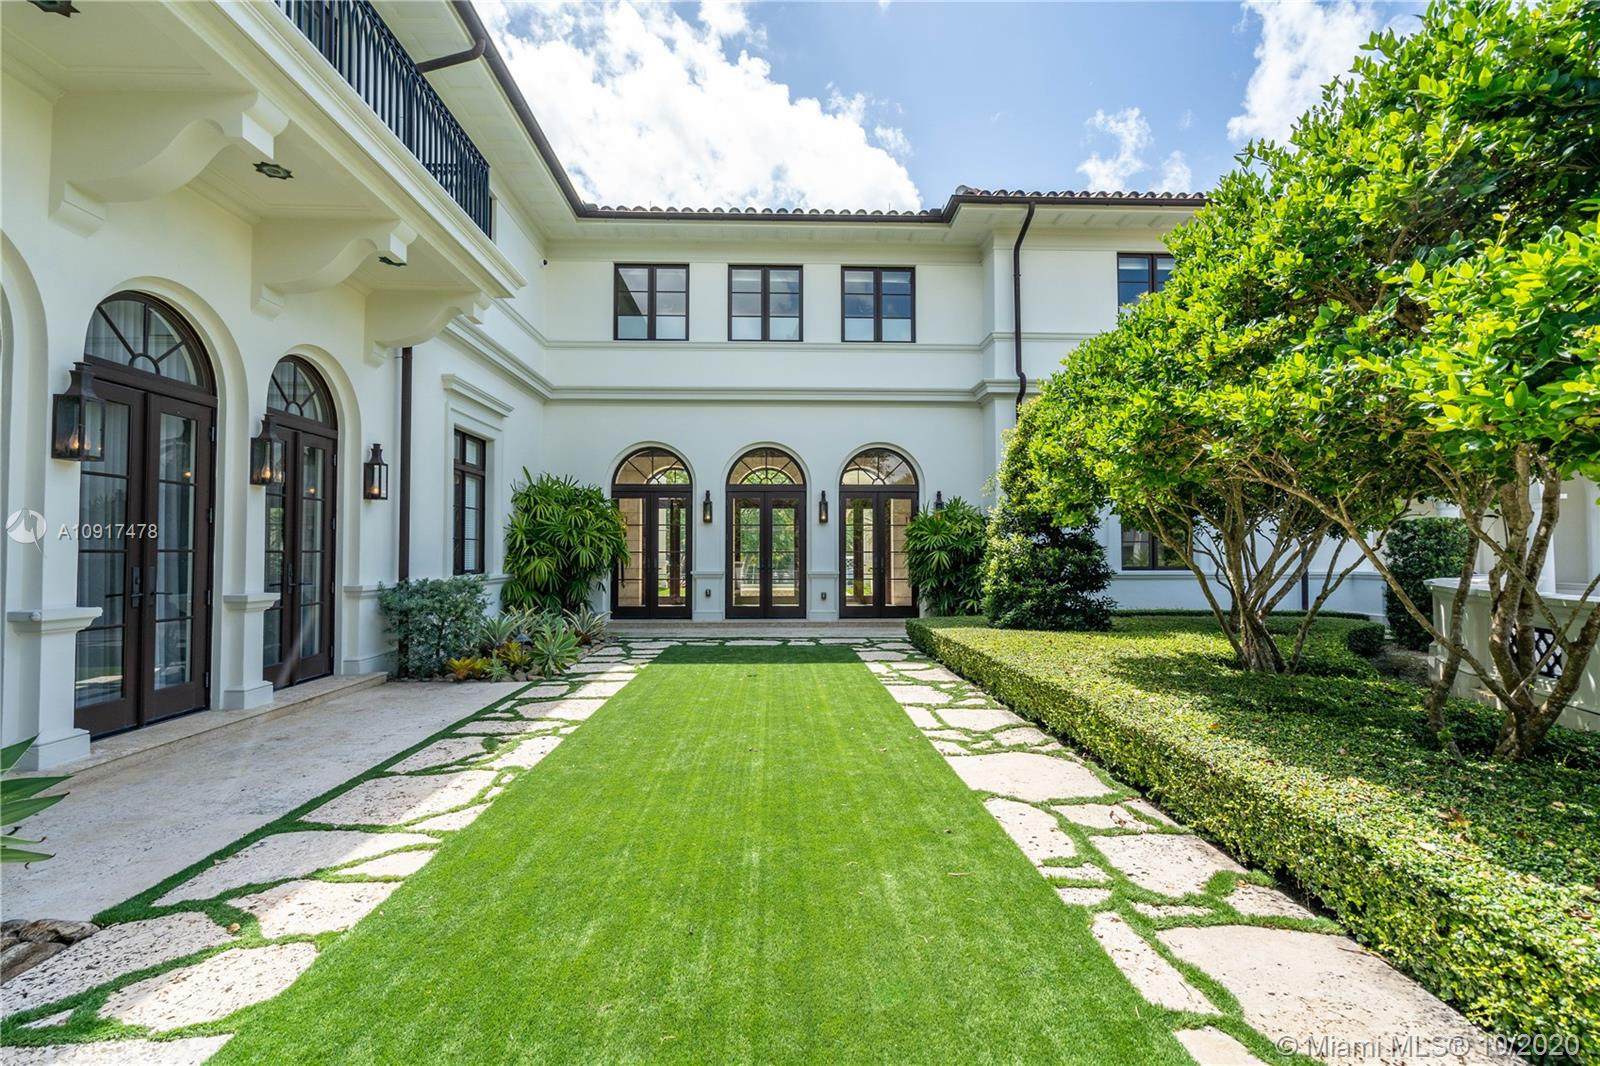 300 Costanera rd- coral-gables-fl-33143-a10917478-Pic14